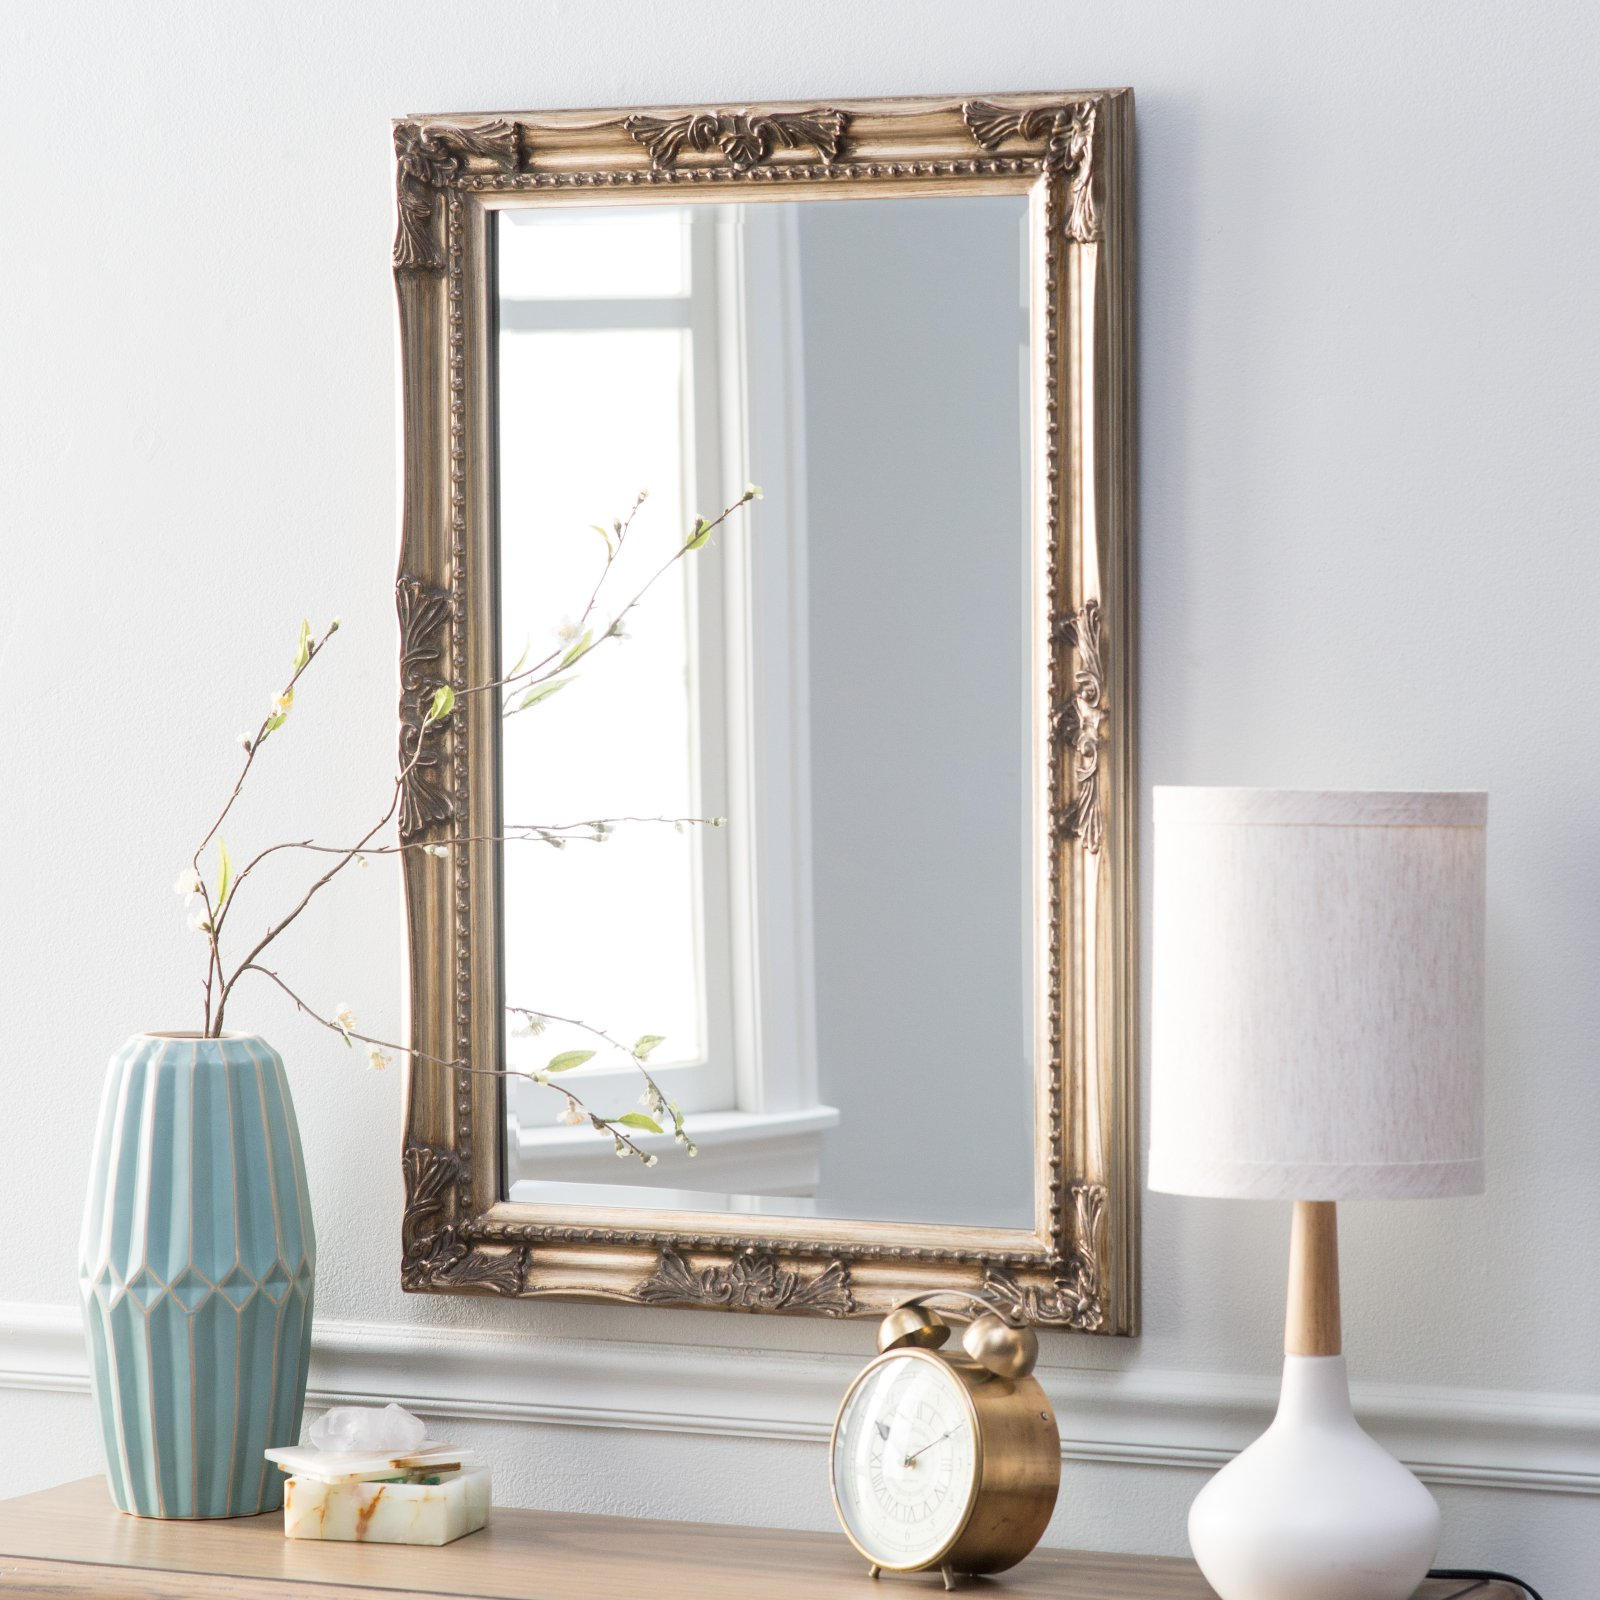 Belham Living Queen Anne Rectangle Wall Mirror by Howard Elliott